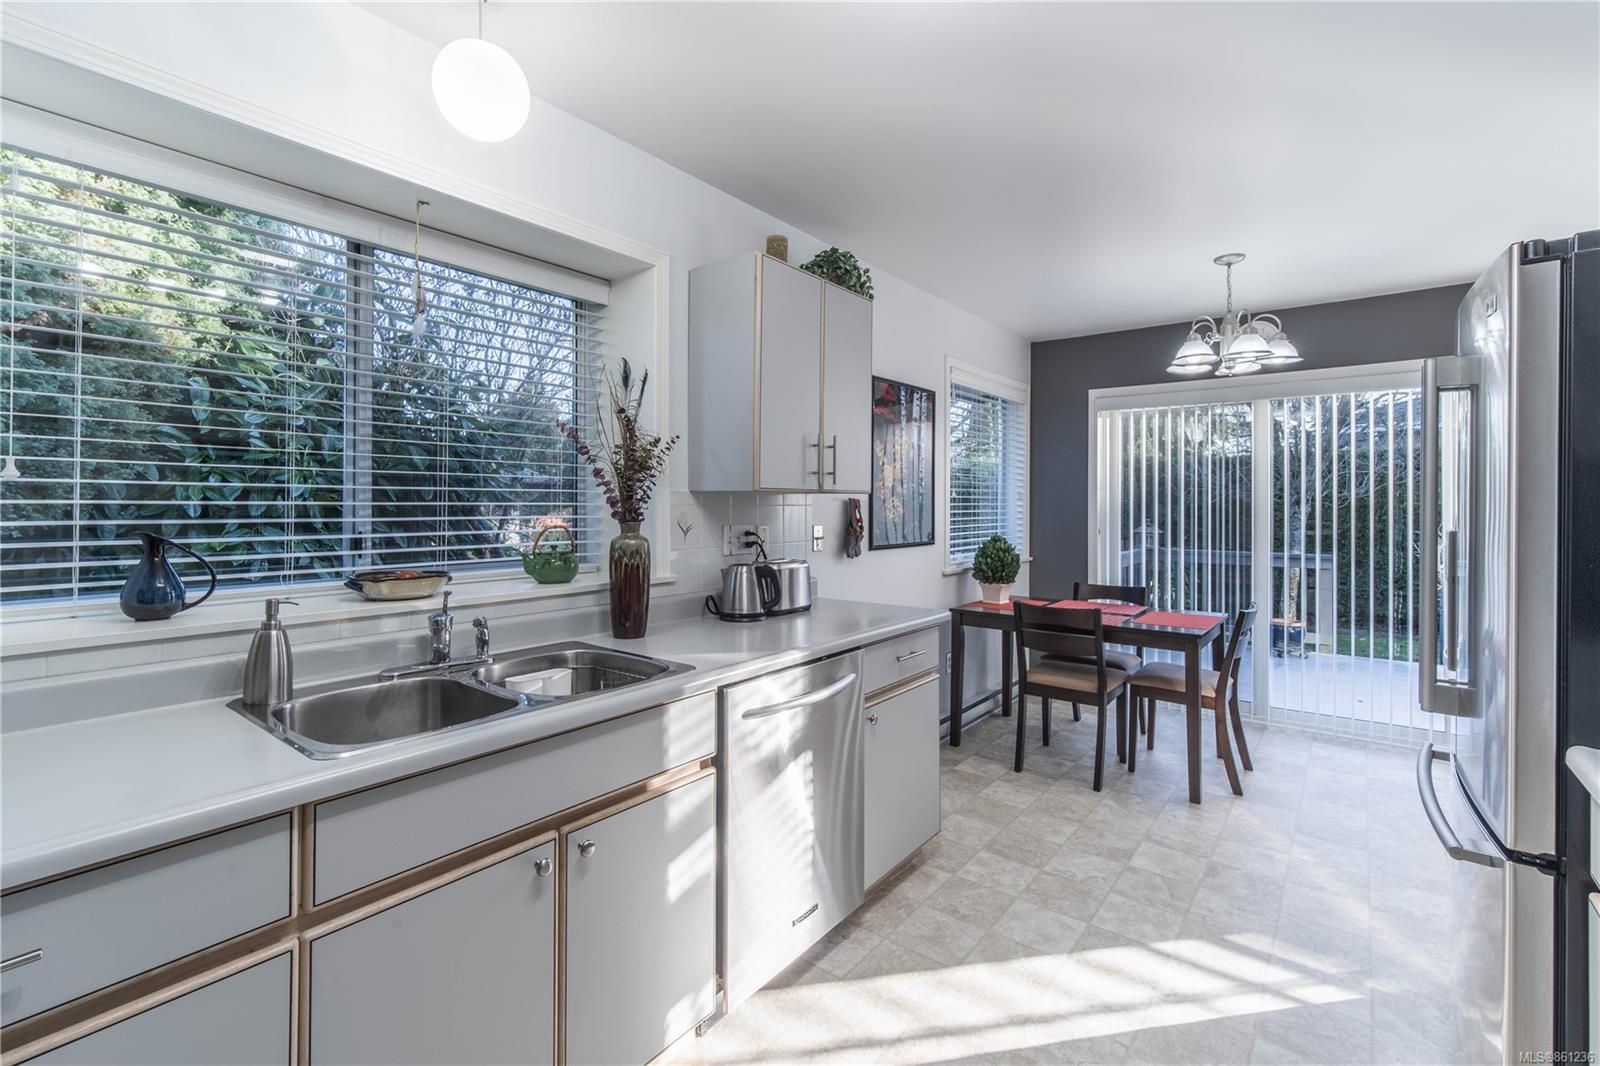 Photo 3: Photos: 2463 Costa Vista Pl in : CS Tanner House for sale (Central Saanich)  : MLS®# 861236